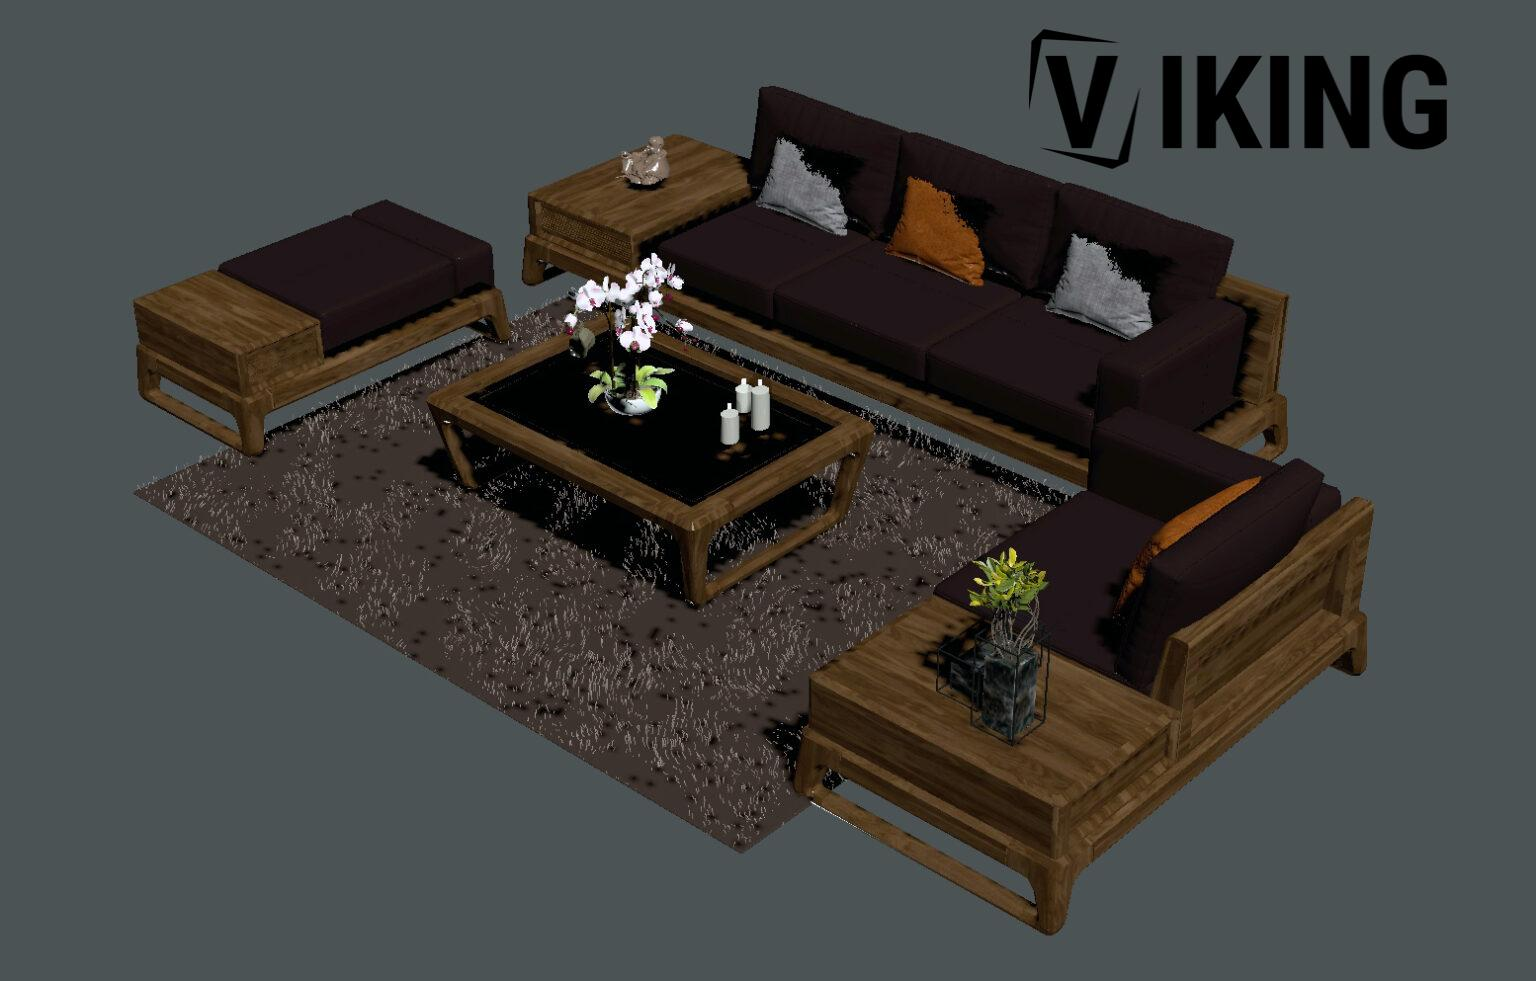 3D Model Sofa Oc Cho Dong Gia 238 By Le Hieu 3 1536x981 1